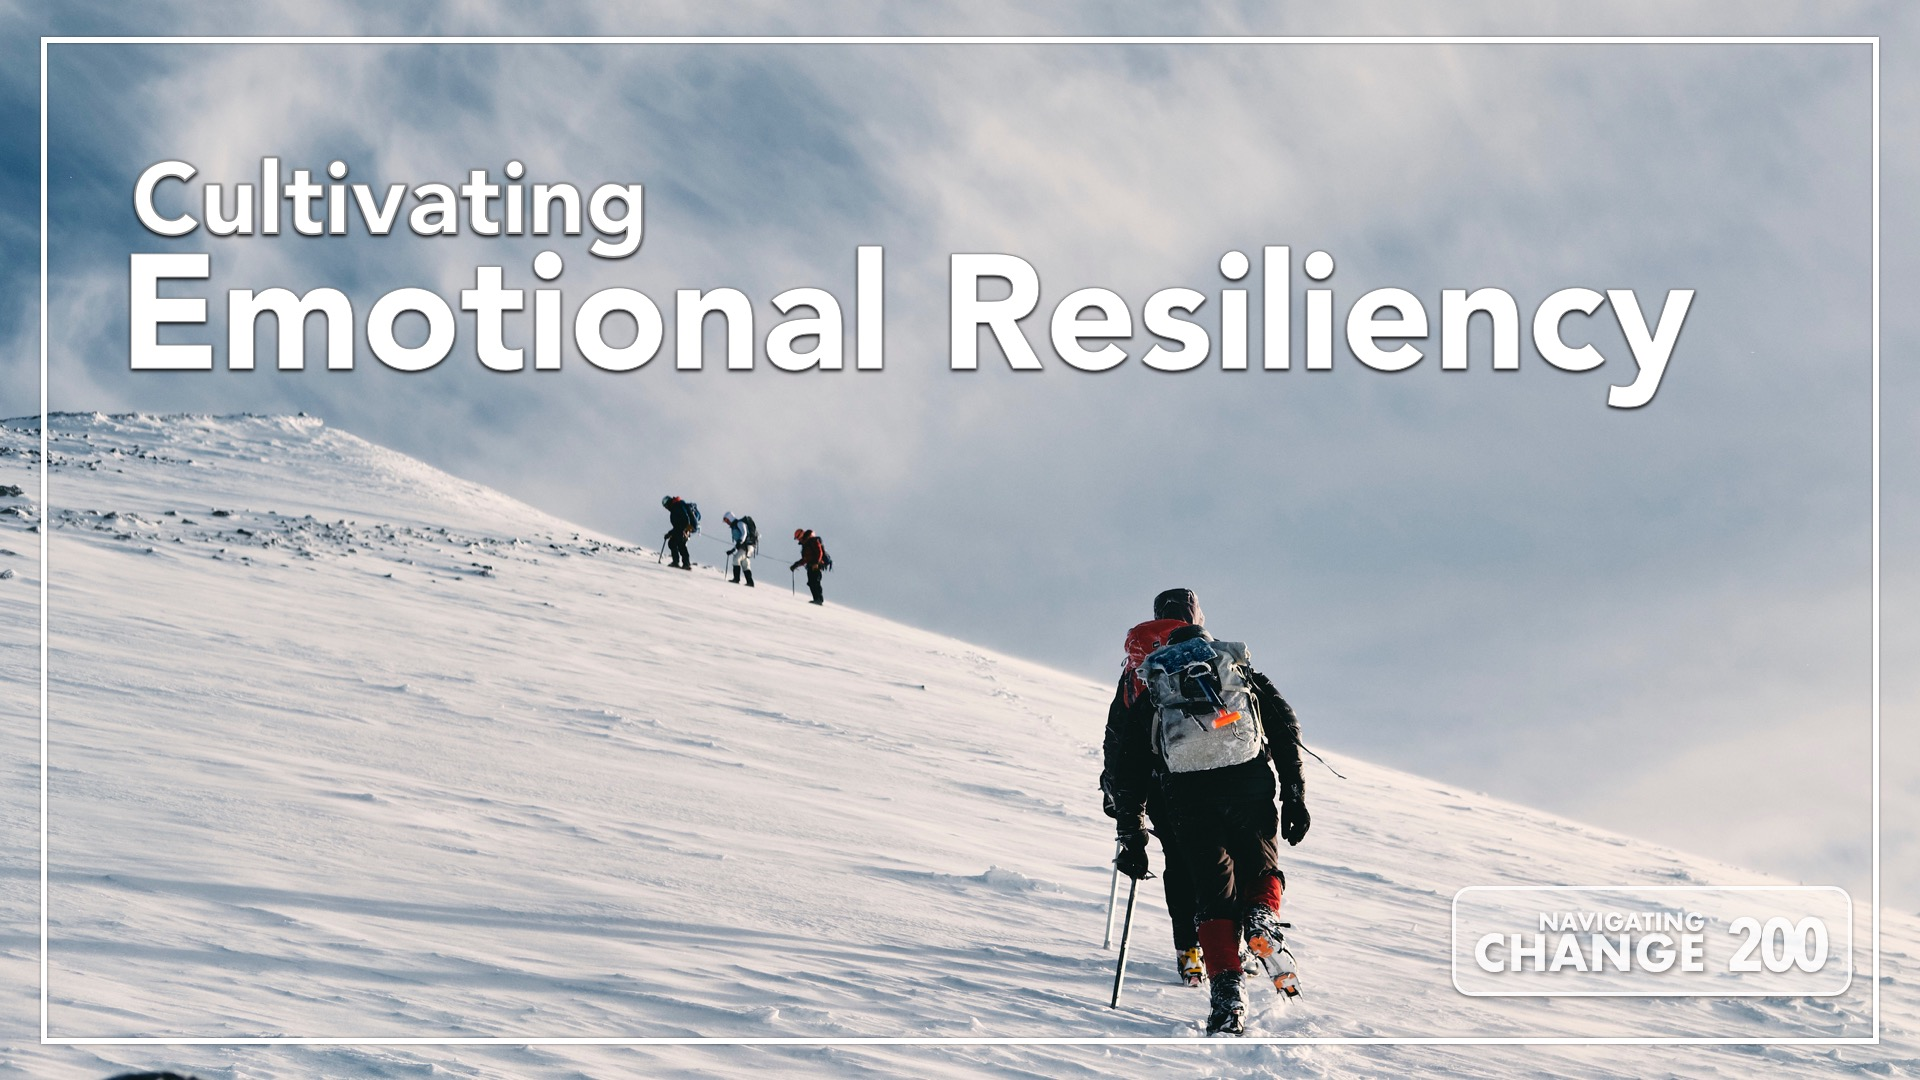 Listen to Emotional Resiliency on Navigating Change the Education Podcast